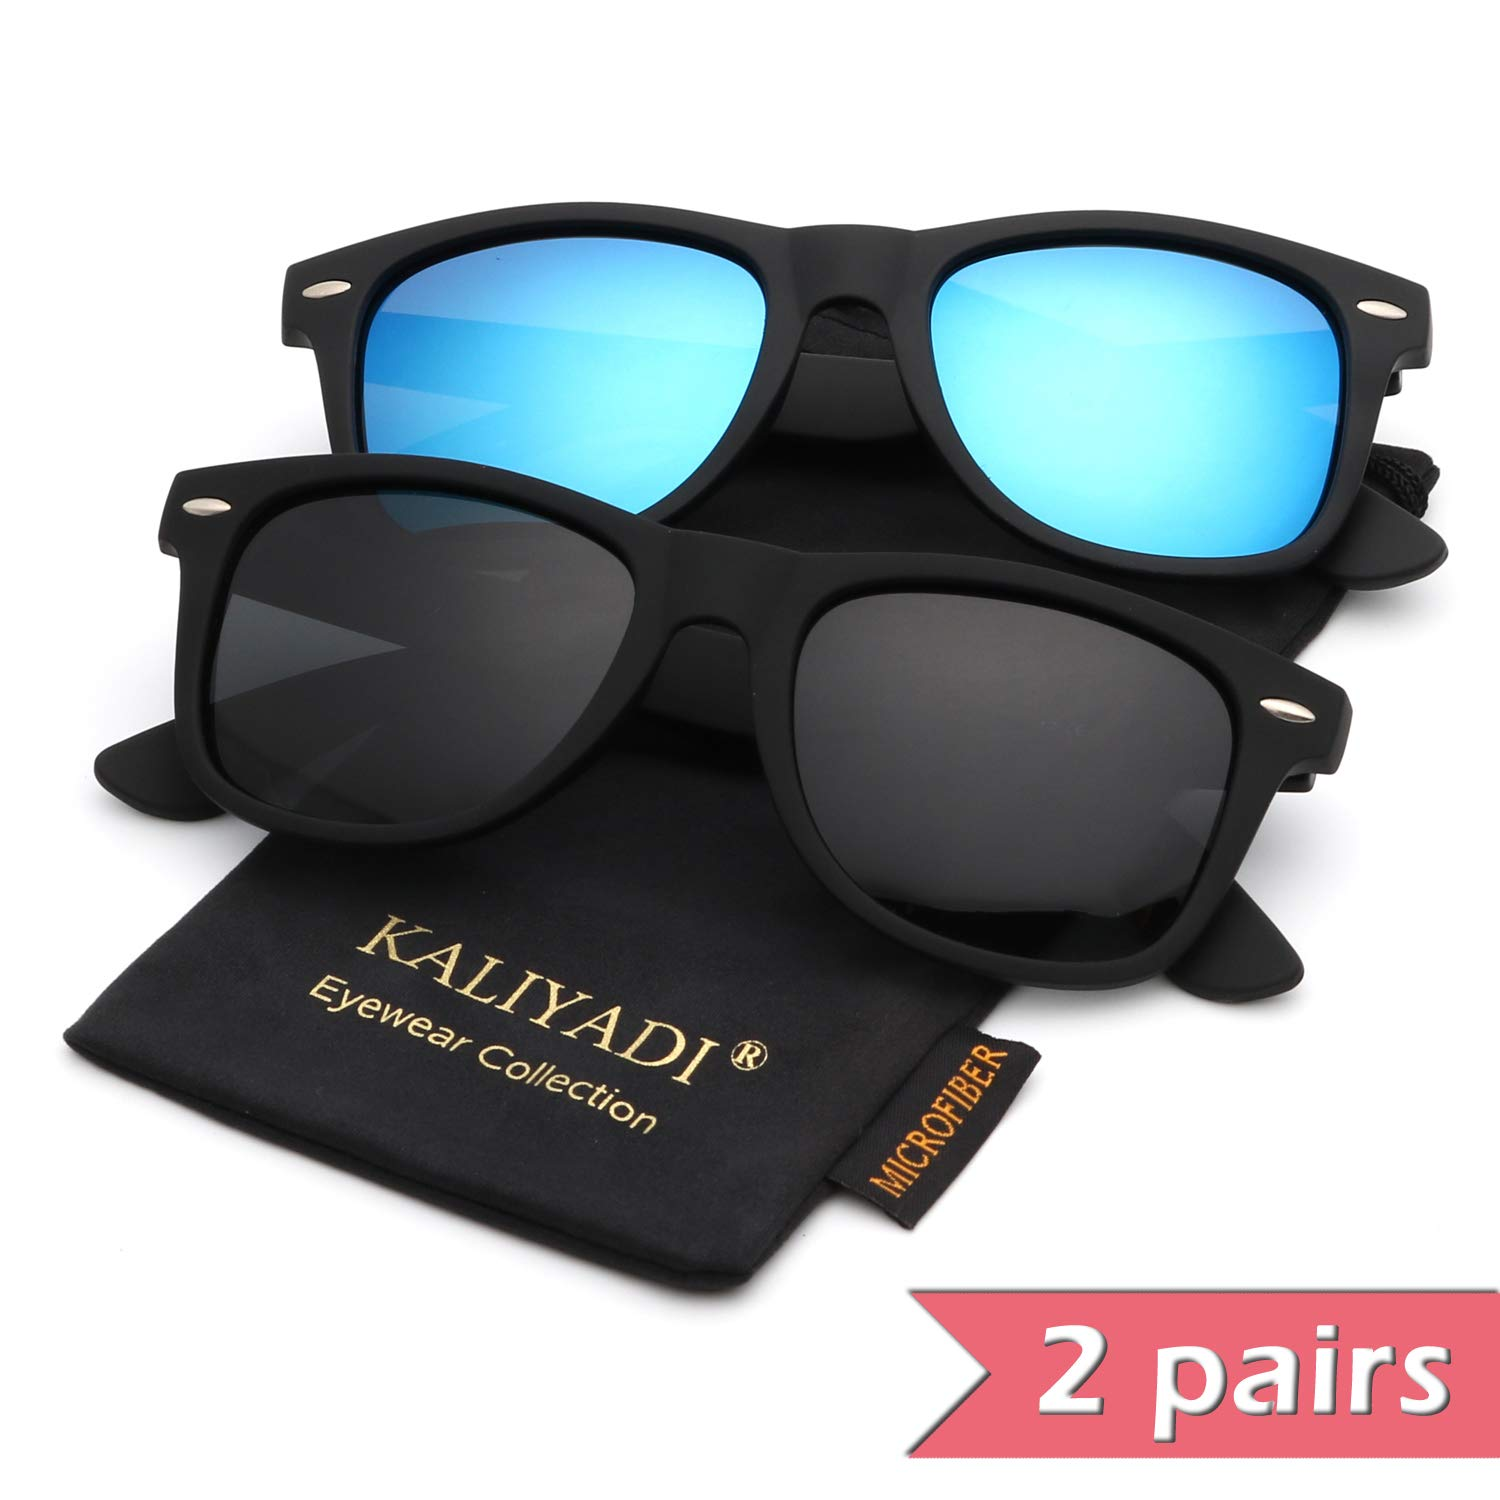 Mens Wayfarer Polarized Sunglasses Vintage Refective Mirror Lens Sun Glasses Womens:UV400 Protection (2 pairs) by KALIYADI